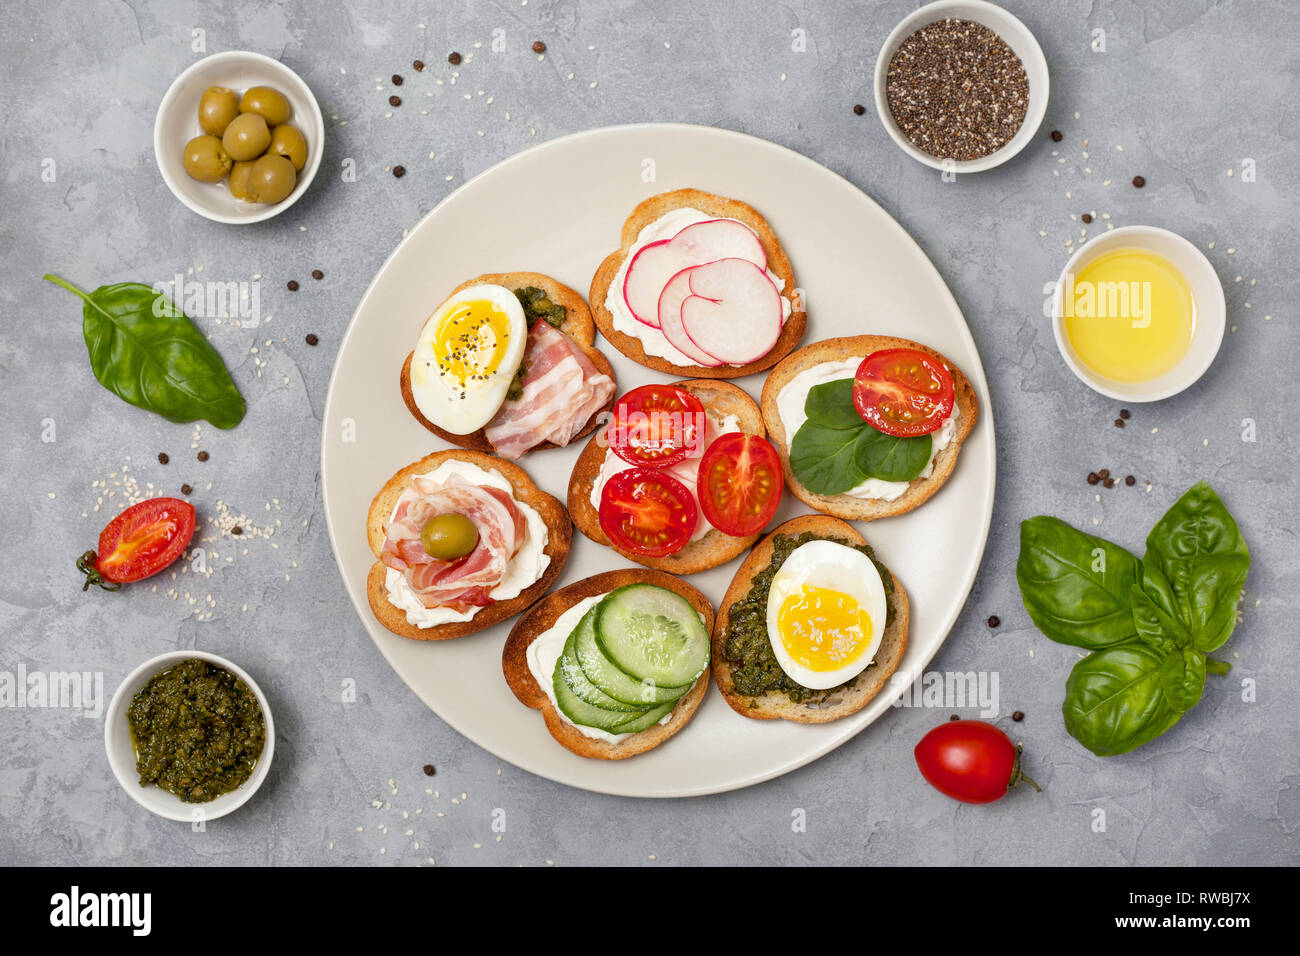 variants of sandwiches with cream cheese, pesto, tomatoes, cucumber, egg, bacon, radishes on a gray background. view from above Stock Photo